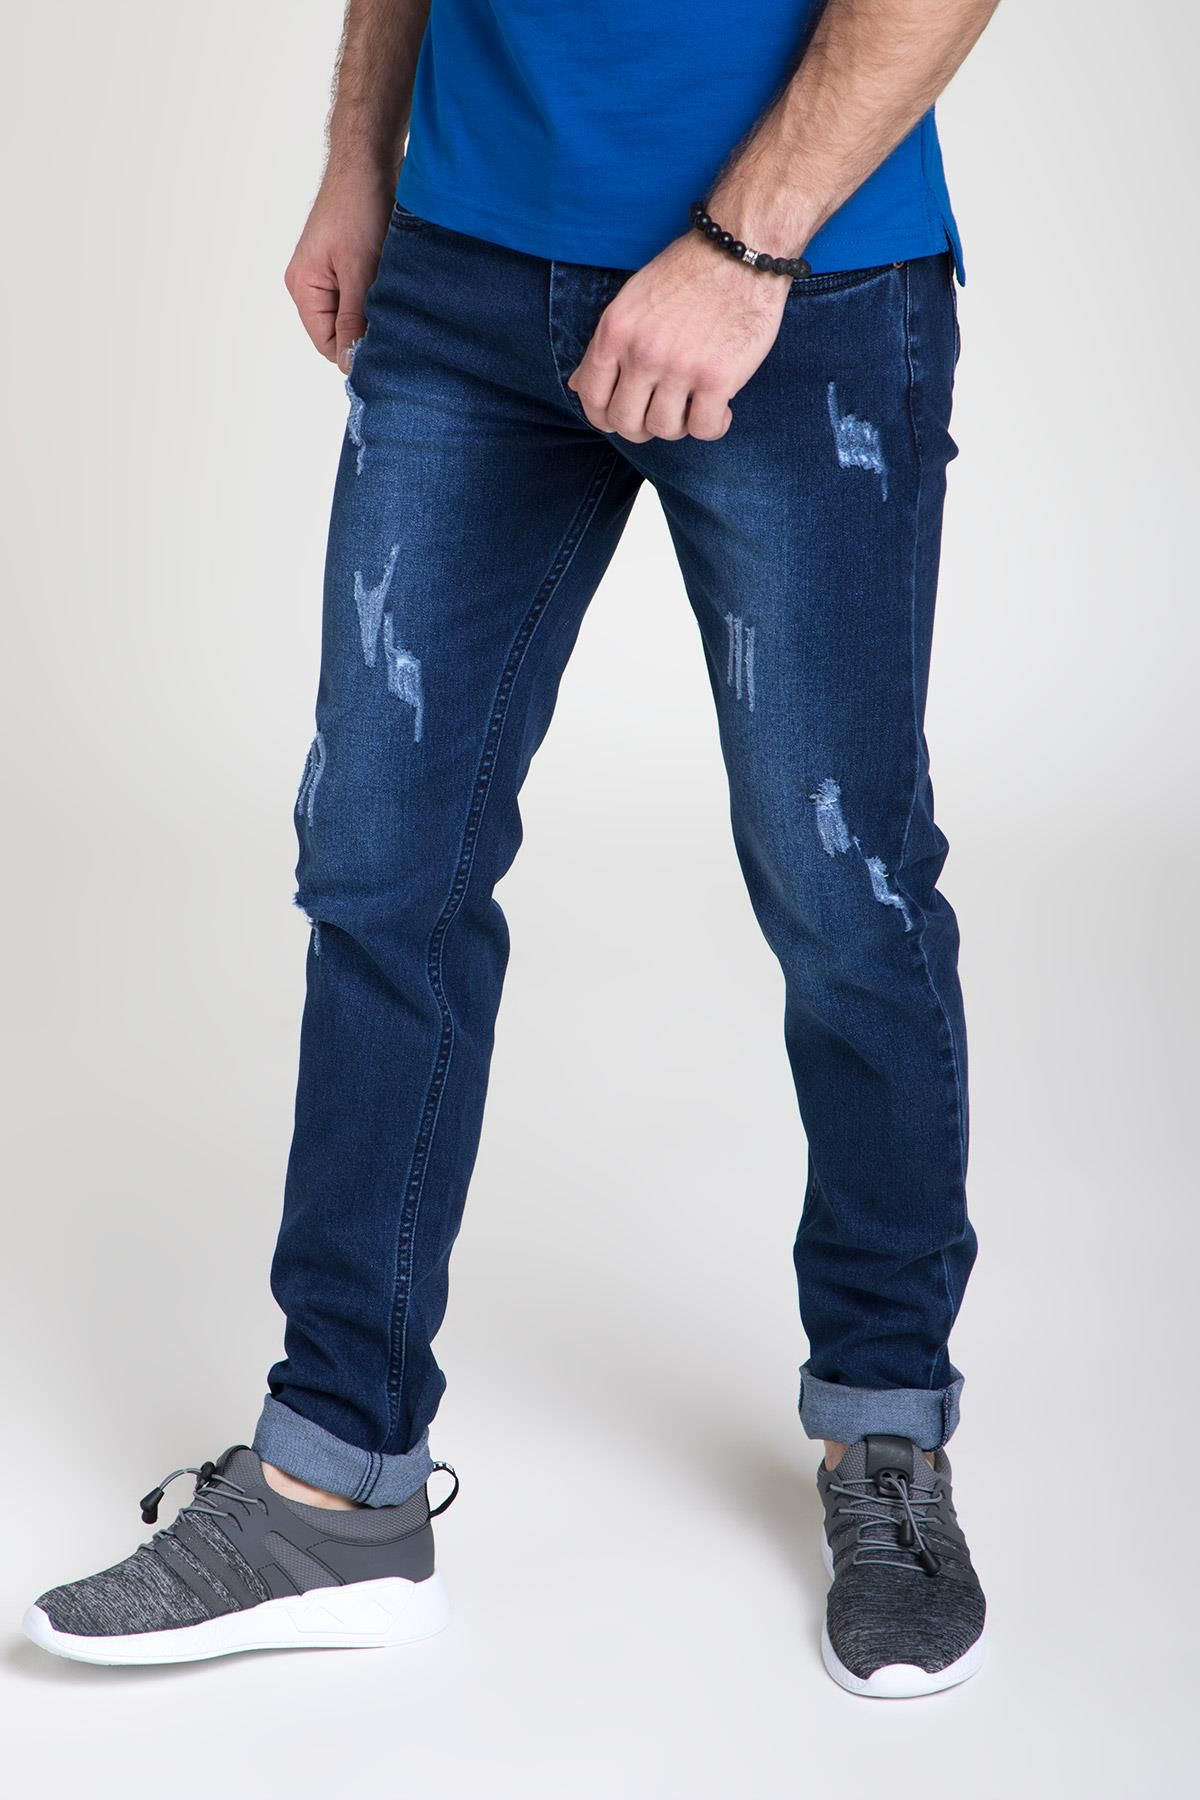 14fh06d1 Ifazone Blue Distressed Denim Direct Selling